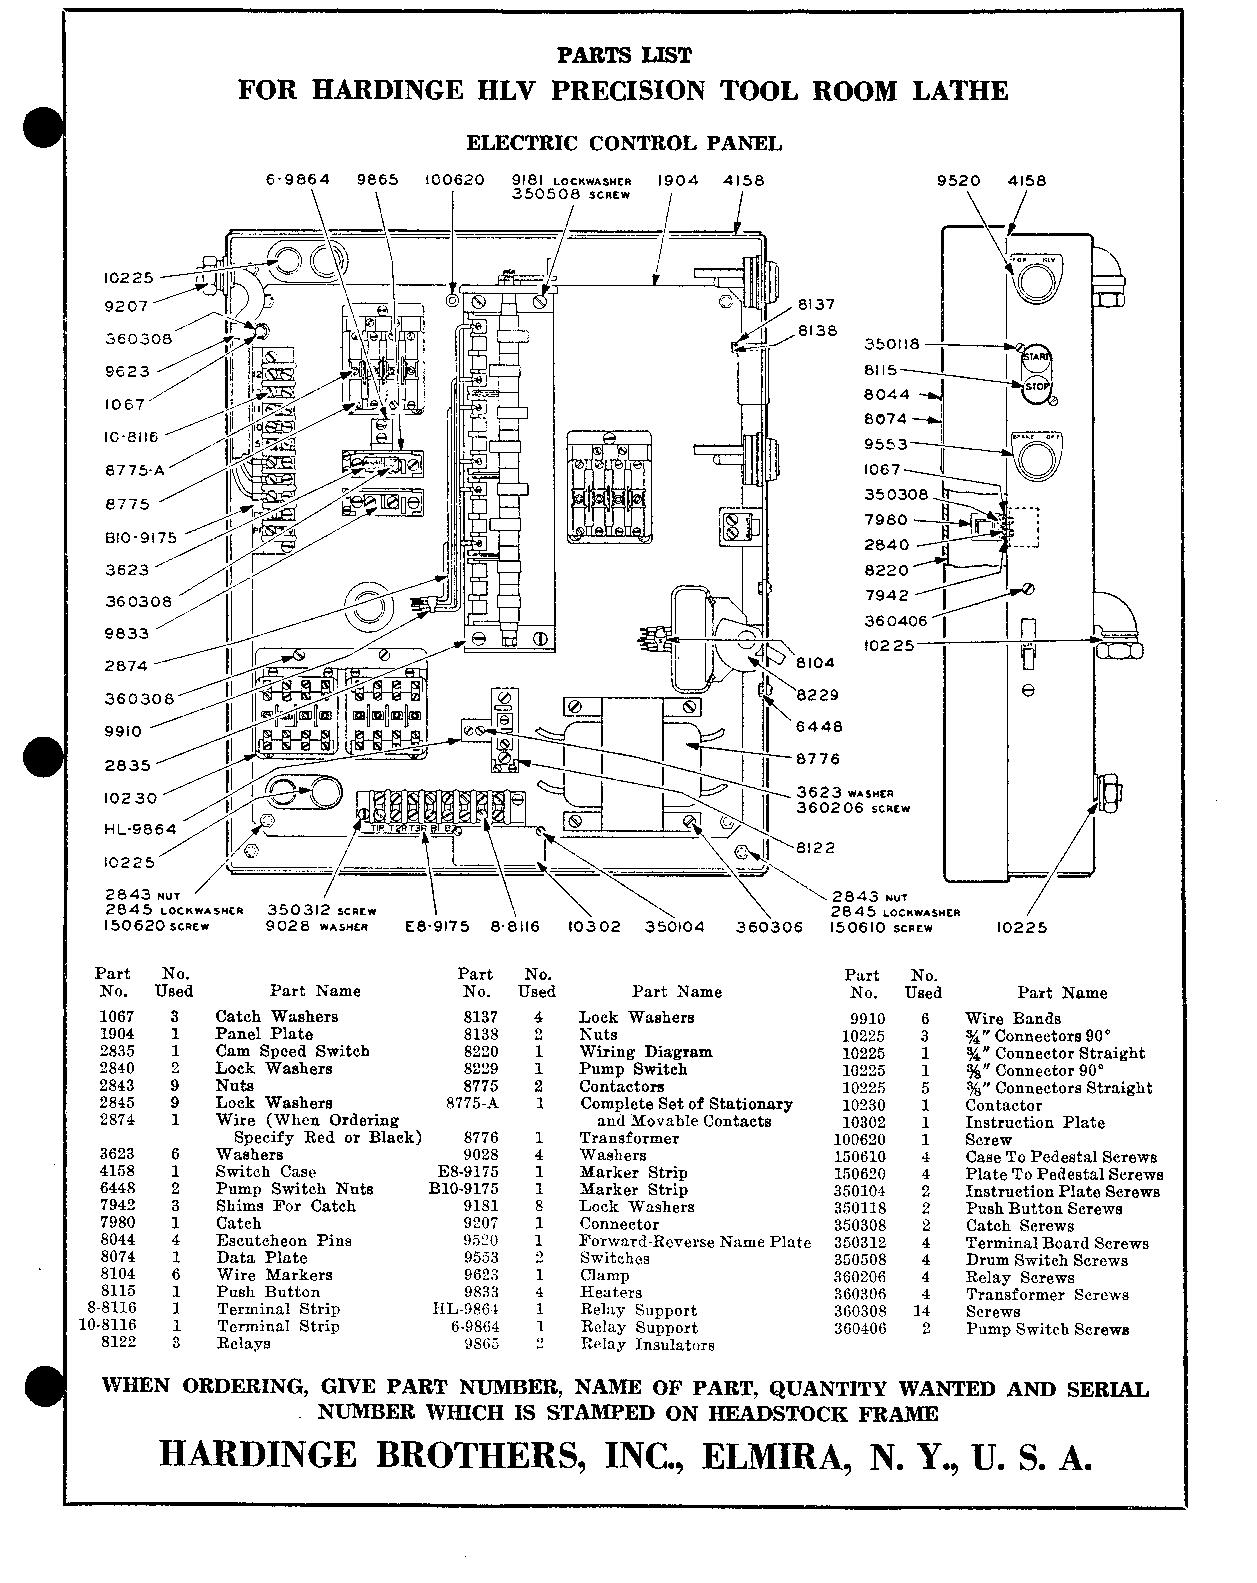 Hardinge hlv parts list page 24 electric control panel cheapraybanclubmaster